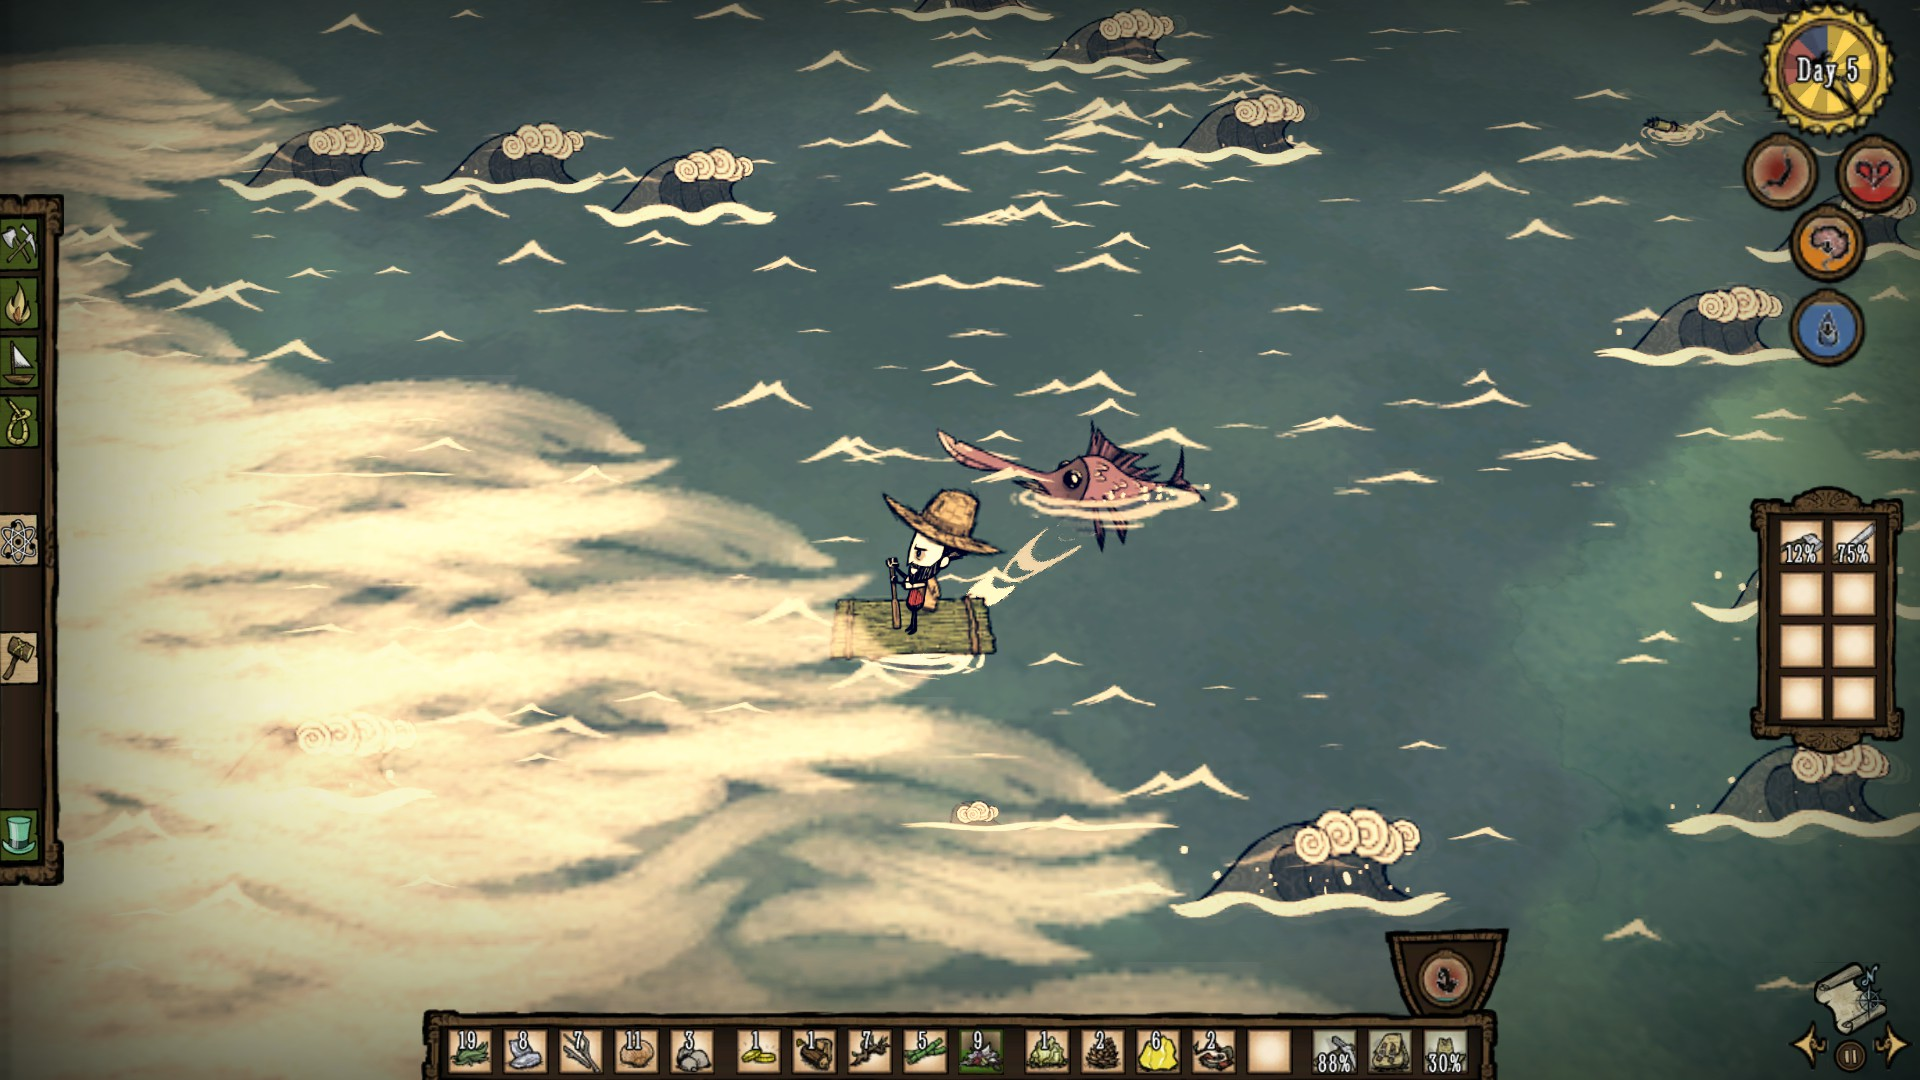 My first five days in Don't Starve: Shipwrecked did not go ... on bloodborne map, dark souls map, dead rising 3 map, dragon age: inquisition map, h1z1 map, dying light map, five nights at freddy's map, strider map, lords of the fallen map, damnation map, assassin's creed unity map, crackdown 2 map, icewind dale map, destiny map, axiom verge map, the crew map, terraria map, project zomboid map, the elder scrolls online map, everybody's gone to the rapture map,